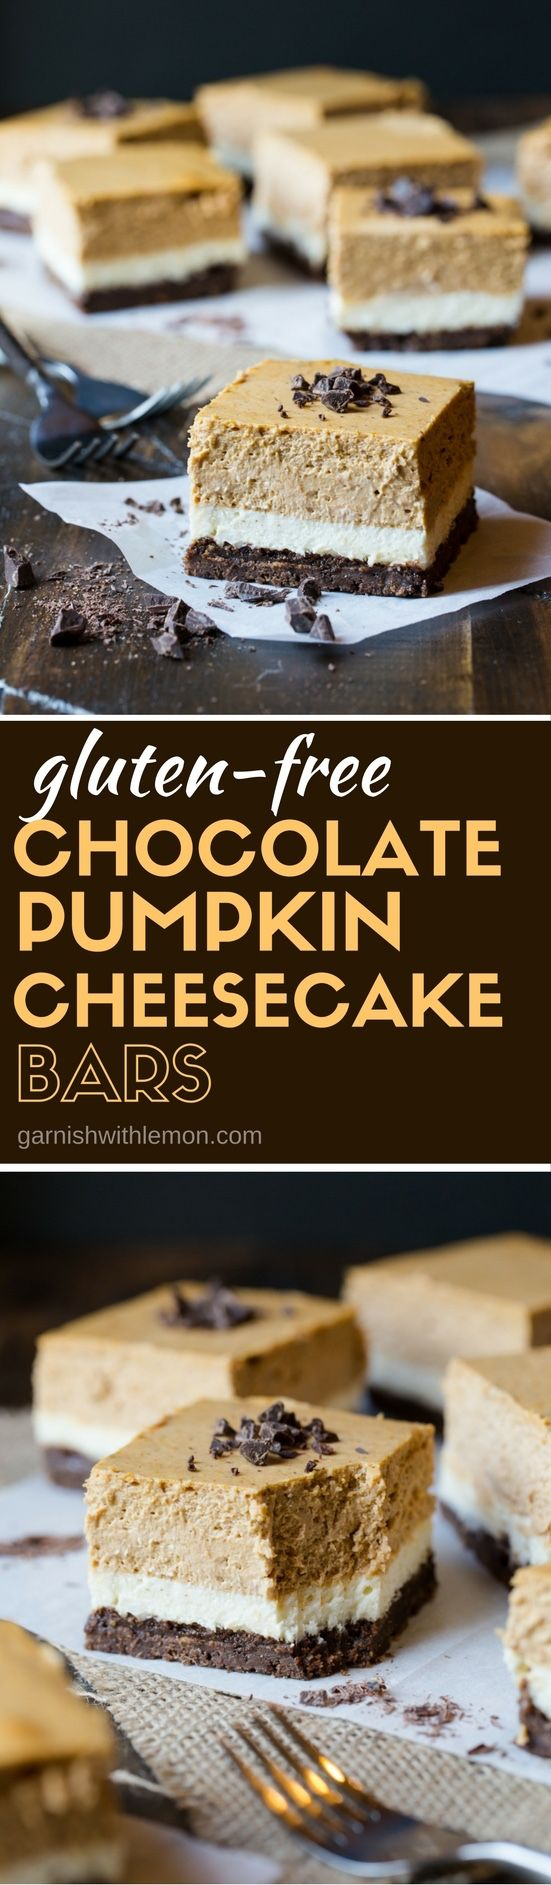 Need a gluten-free dessert for entertaining this fall? This recipe for make-ahead Gluten-Free Chocolate Pumpkin Cheesecake Bars is sure to be a huge hit with your guests!